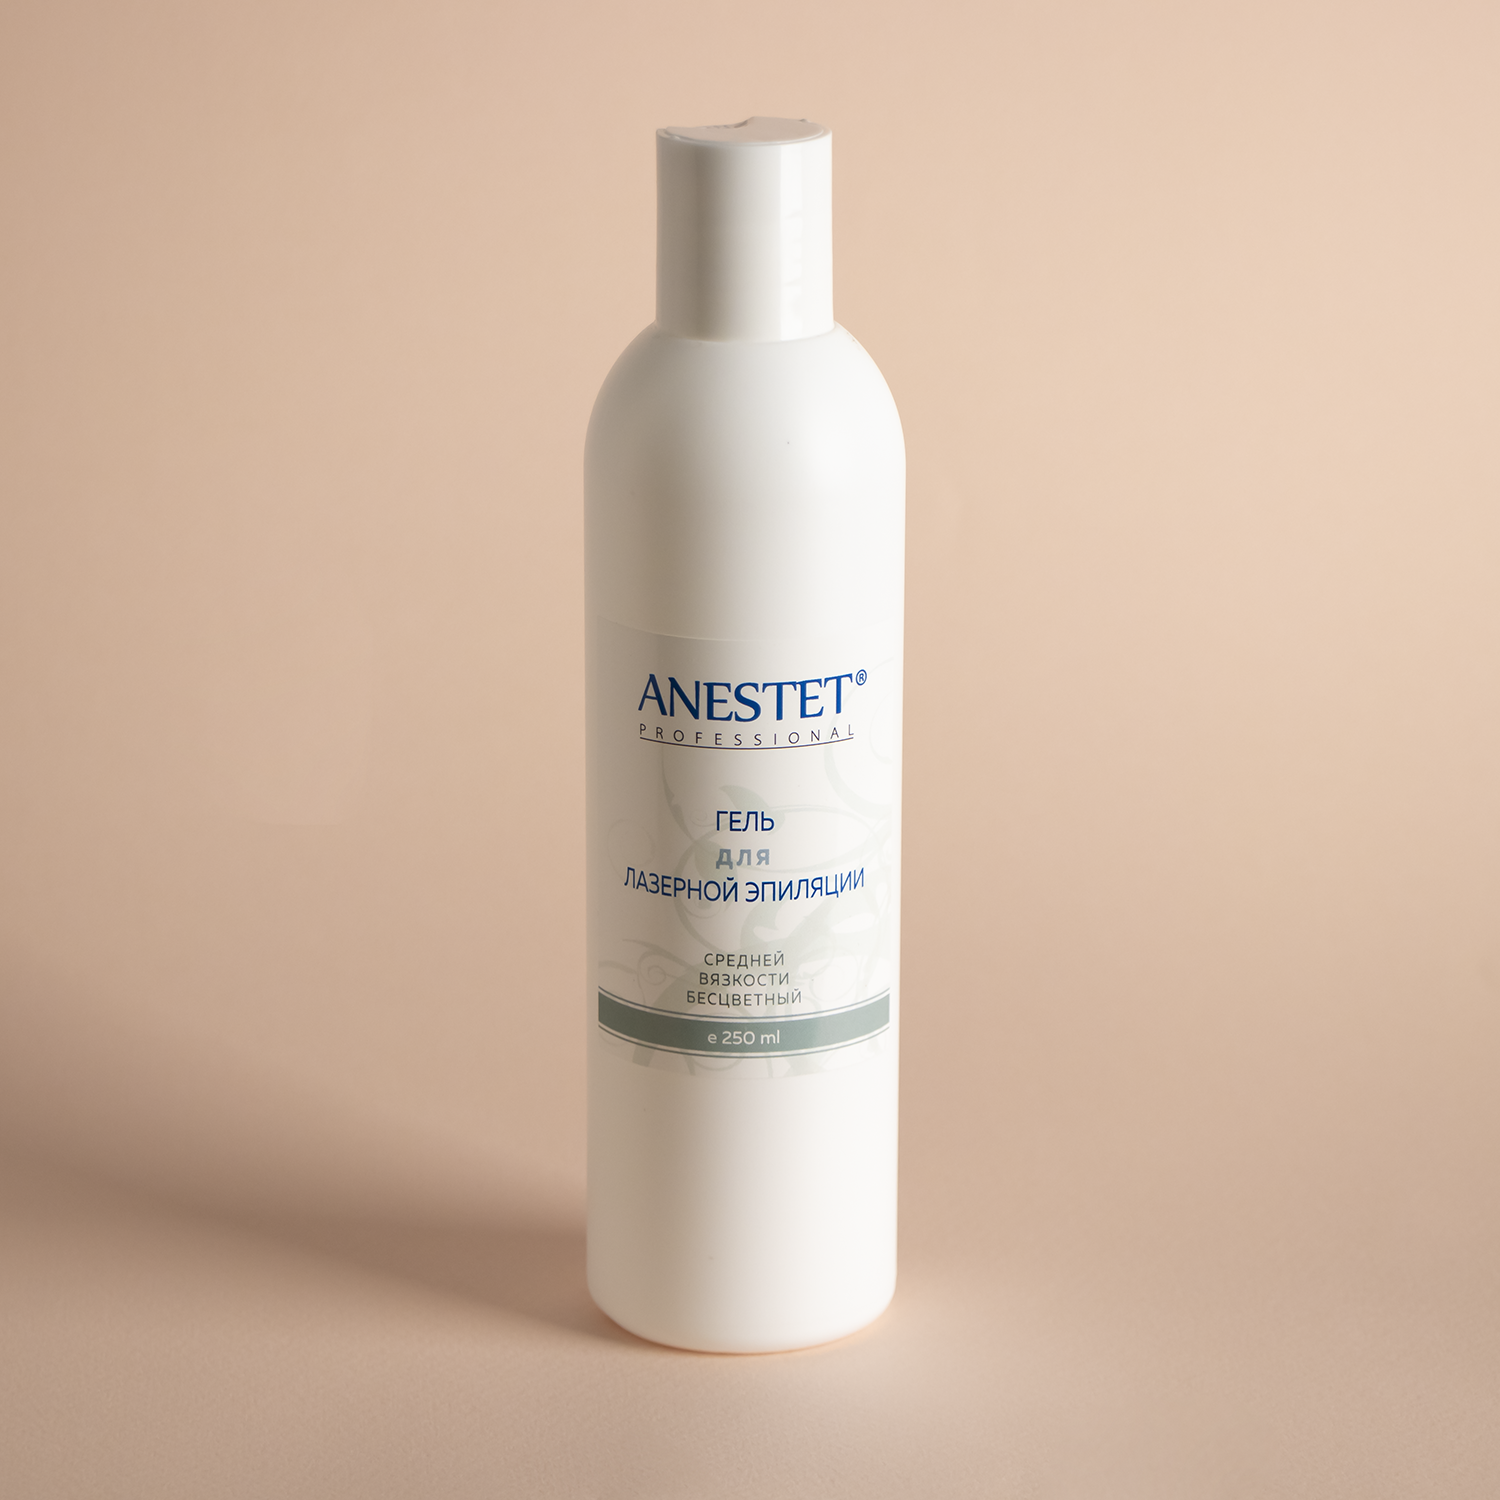 Gel For Laser Hair Removal Medium Viscosity Anestet (анестет) медиагель, 250 Ml.